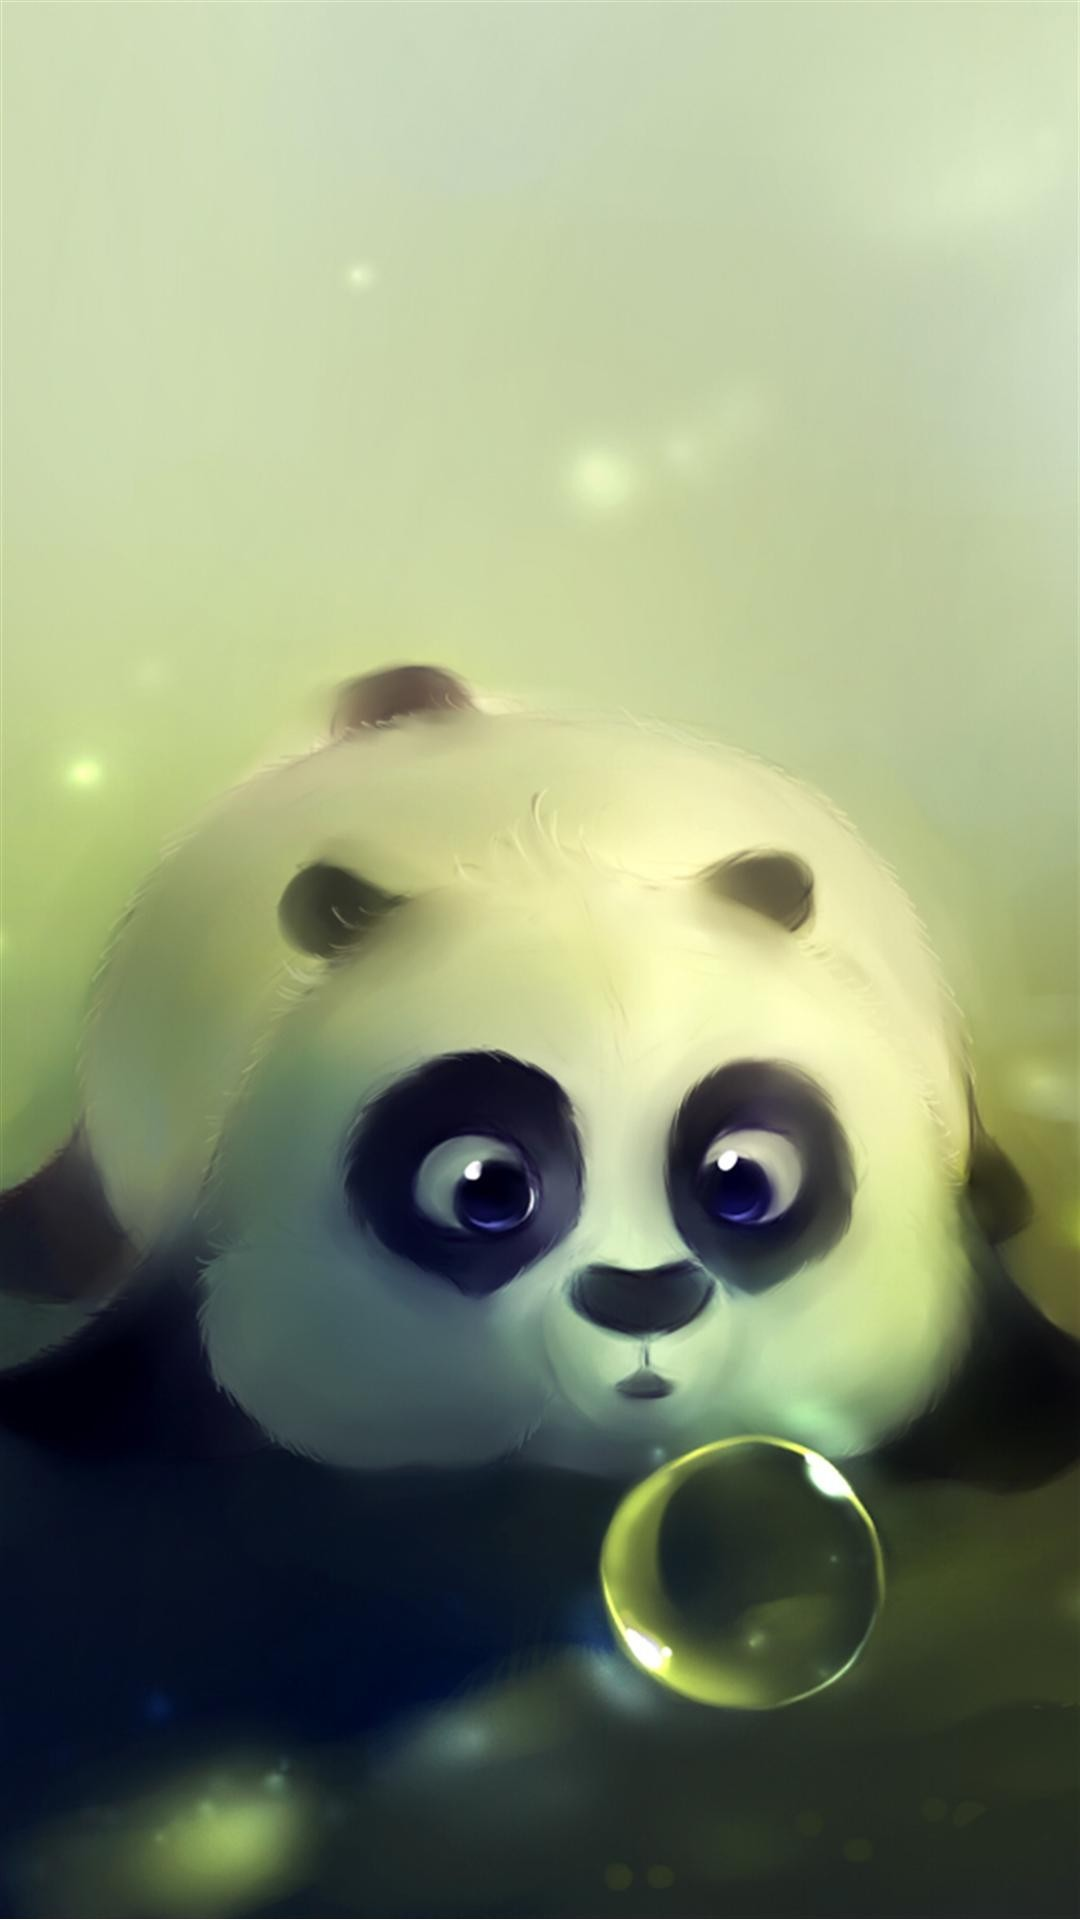 1080x1920 Cute Panda Bubble iPhone 6 Plus HD Wallpaper